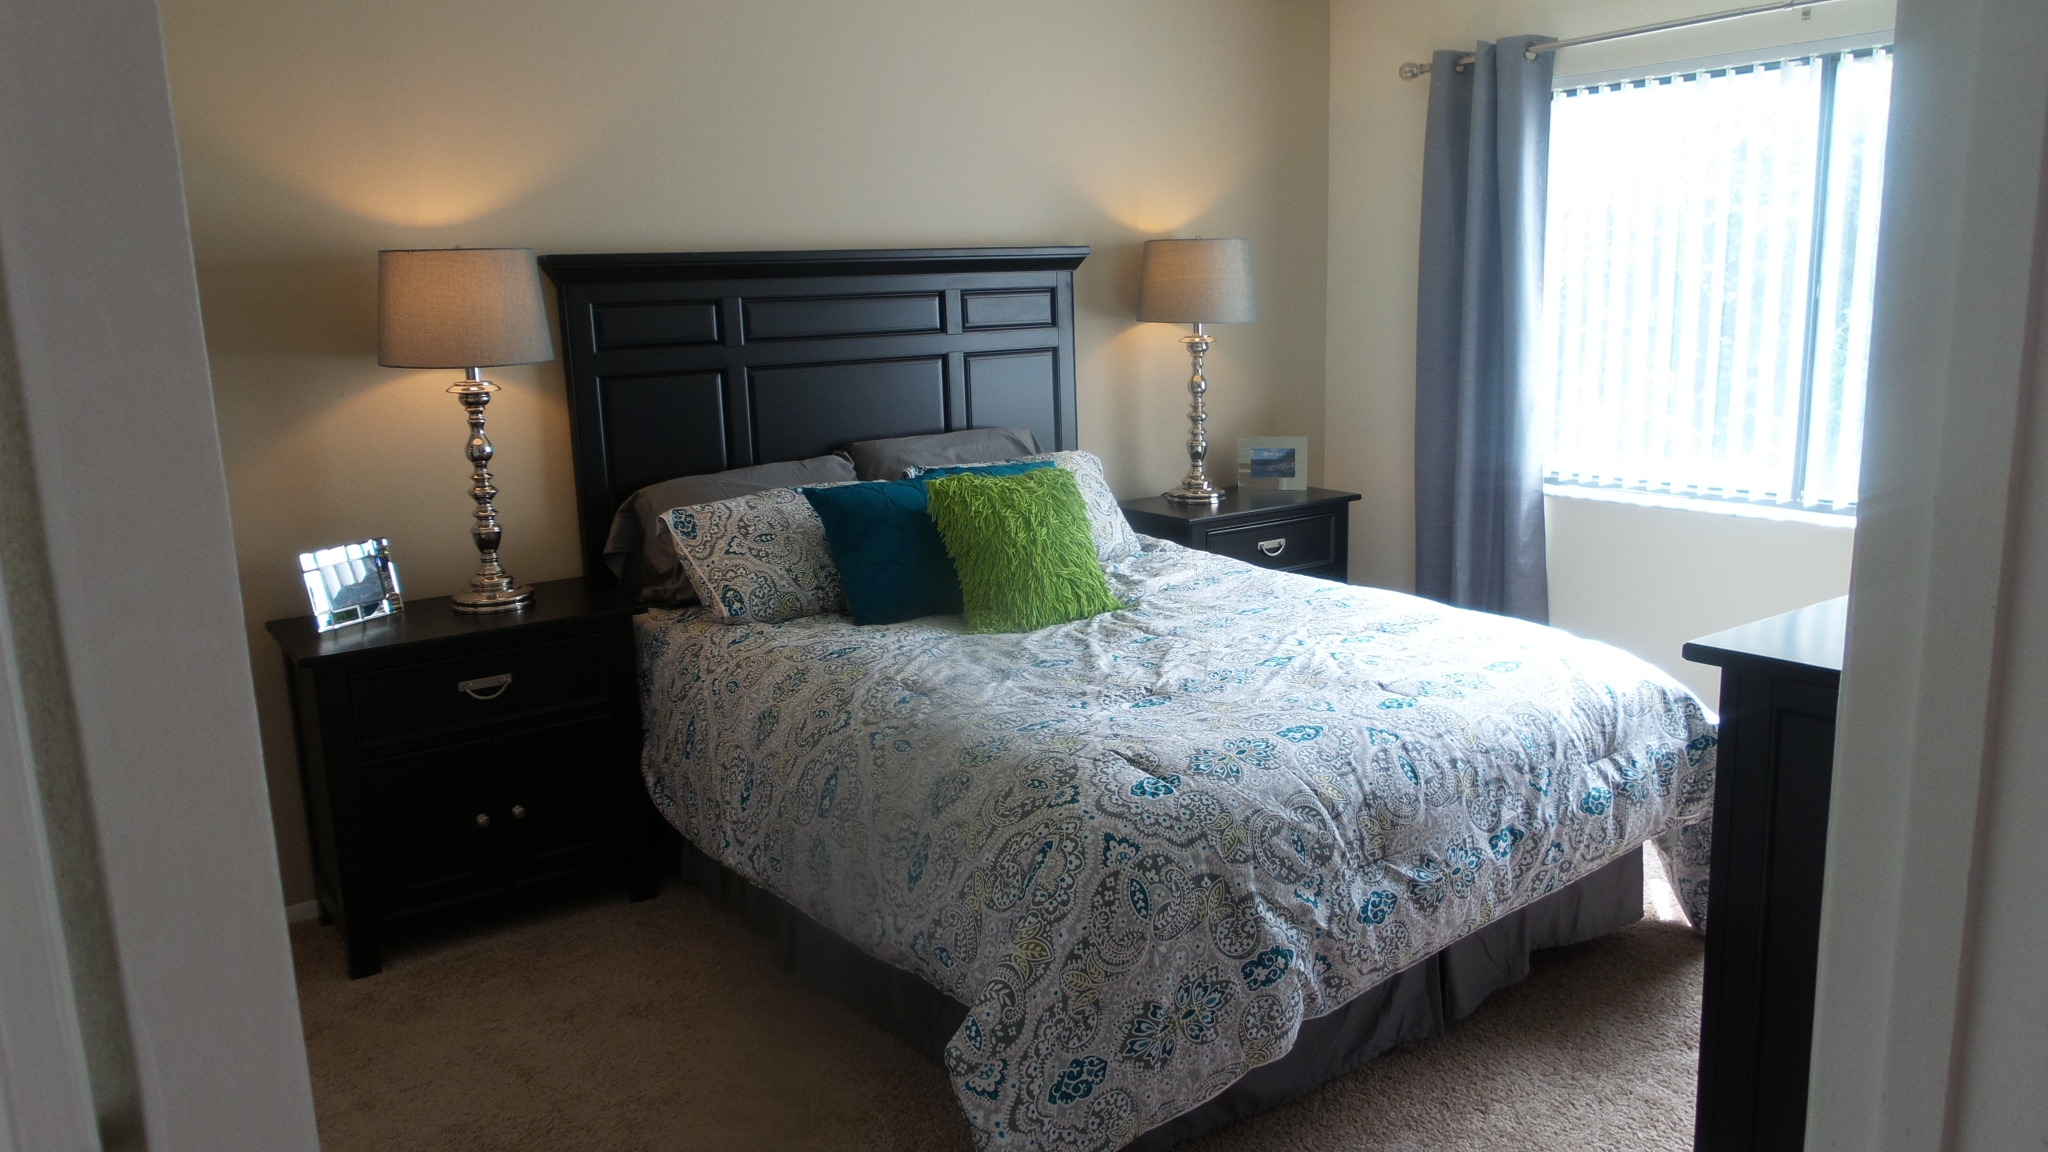 Bedroom with large bed, nightstands and natural light from window | Bay Club Apartments